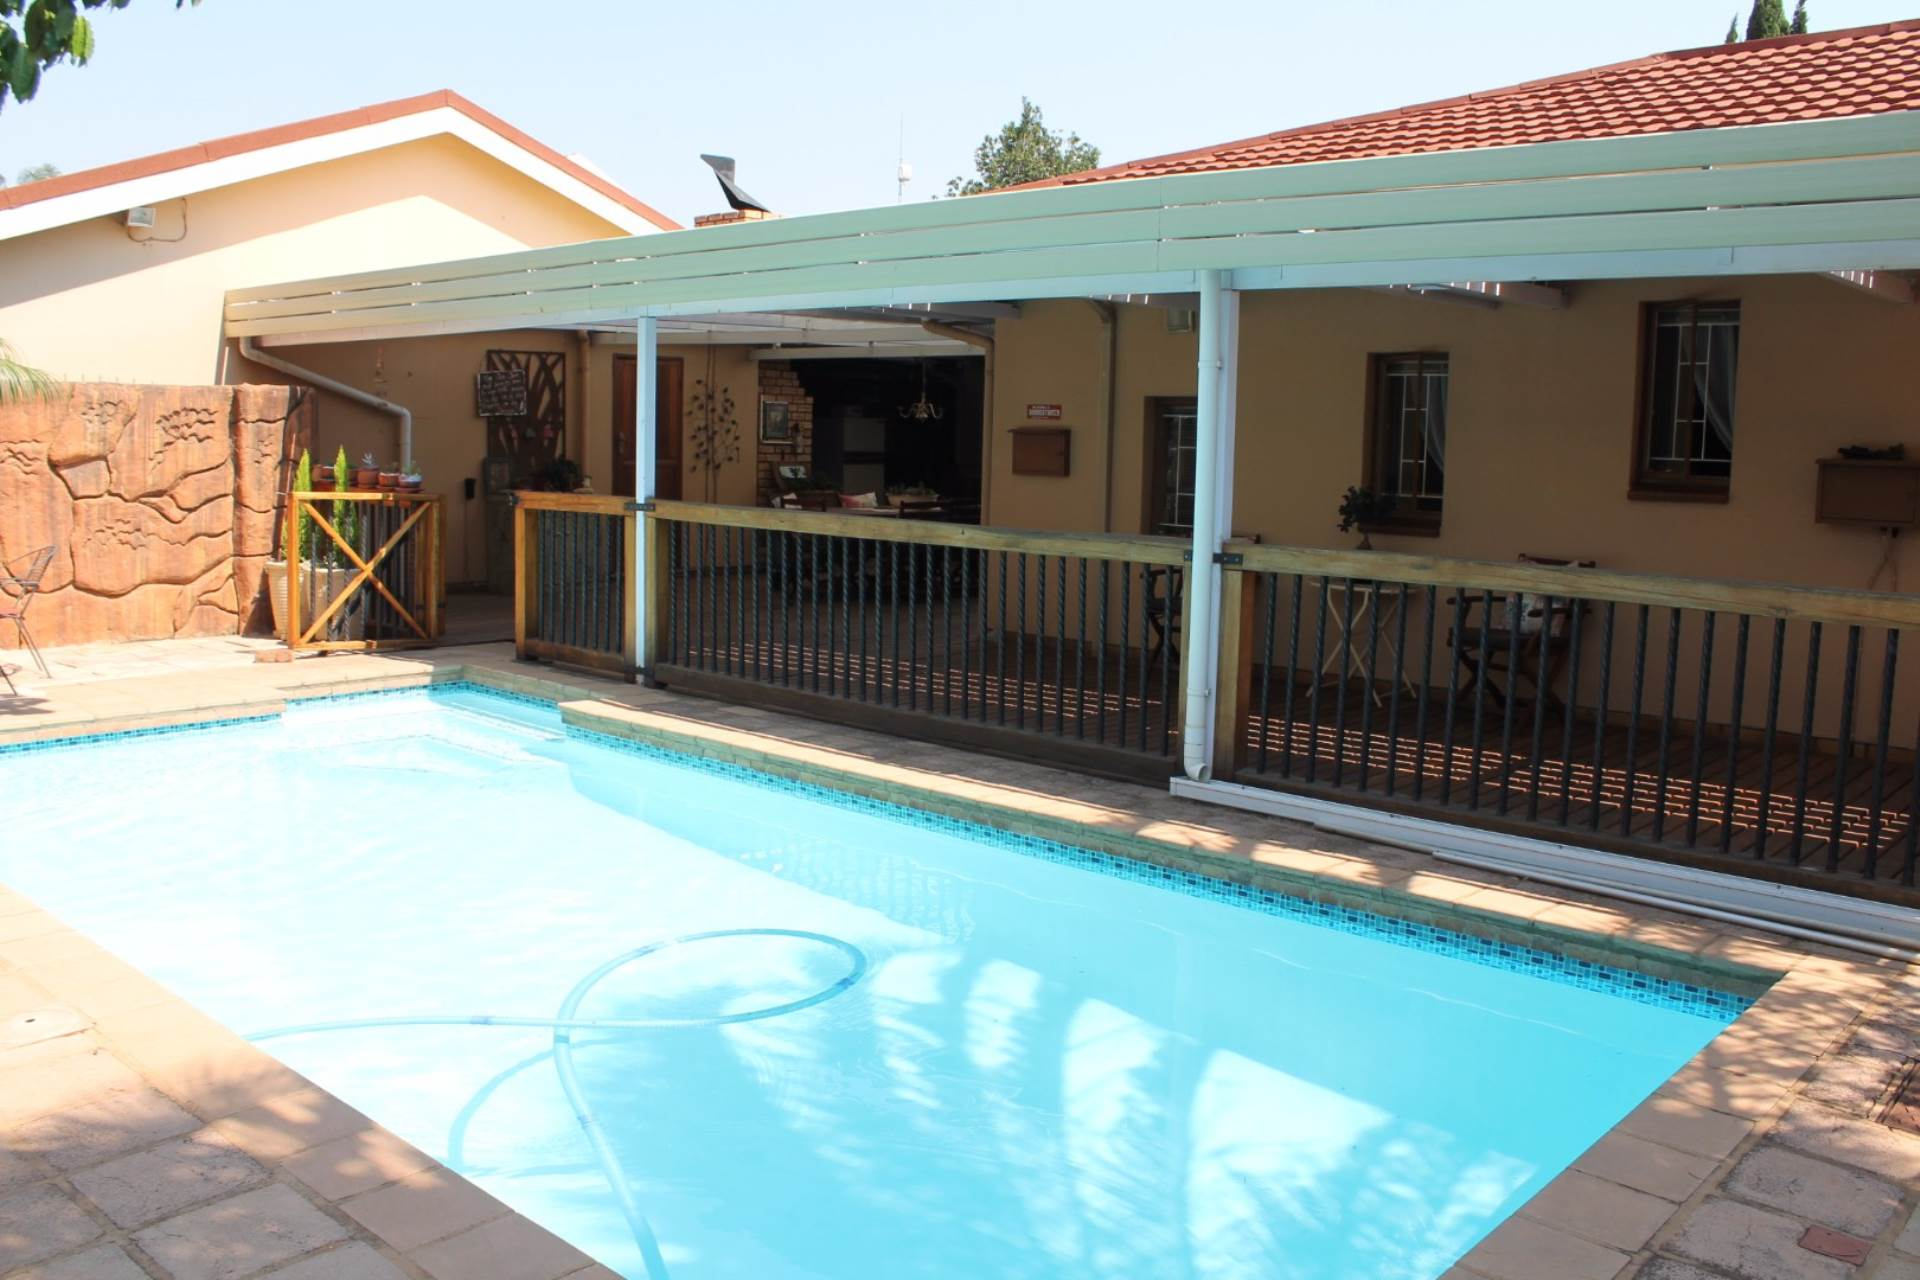 Property and Houses for sale in Karenpark, House, 4 Bedrooms - ZAR 1,550,000